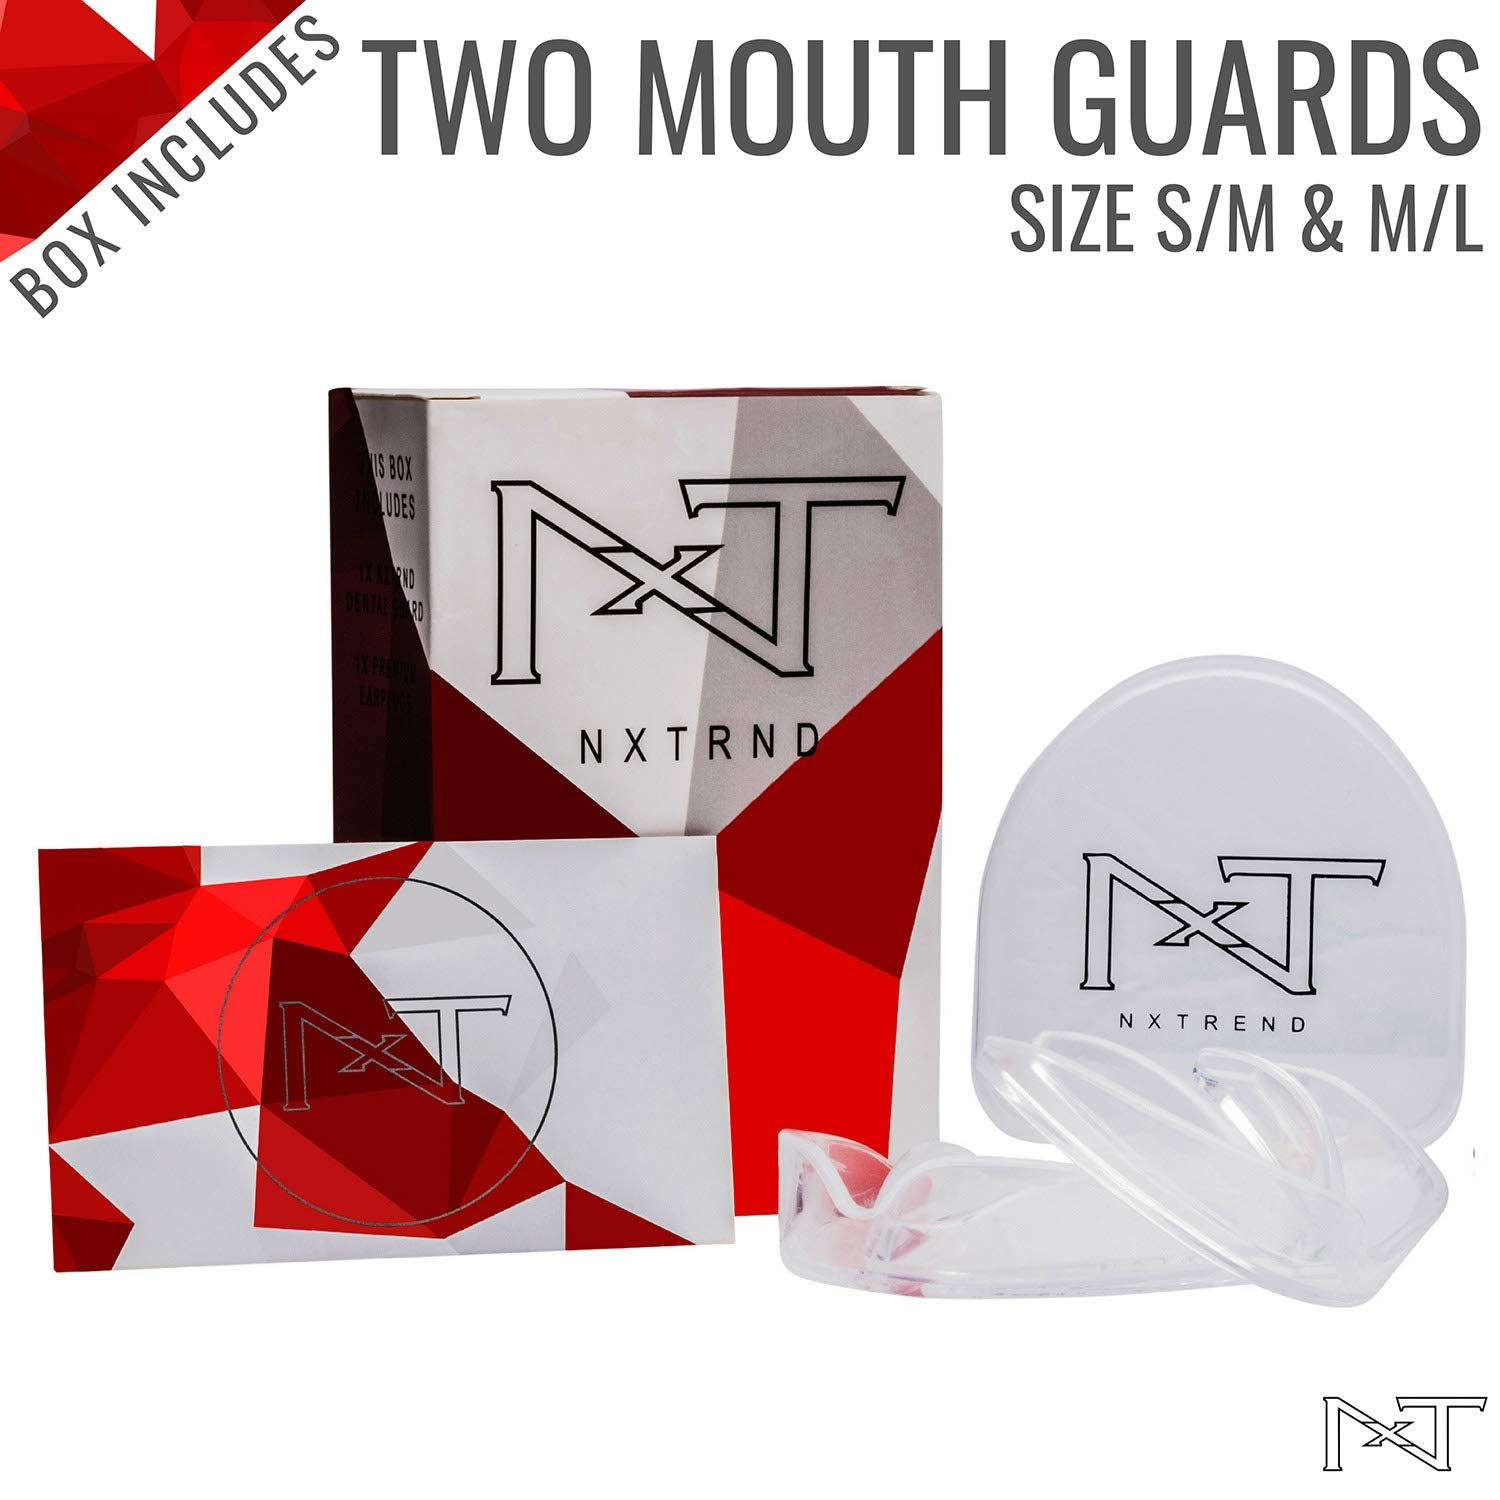 Mouth Guard for Grinding Teeth – Professional Night Guards for Teeth Grinding, Mouth Guard Sports, Dental Sleep Guard Stops TMJ, Bruxism, Teeth Clenching, Anti-Bacterial Case & Earplugs Included by NXTRND USA (Image #3)